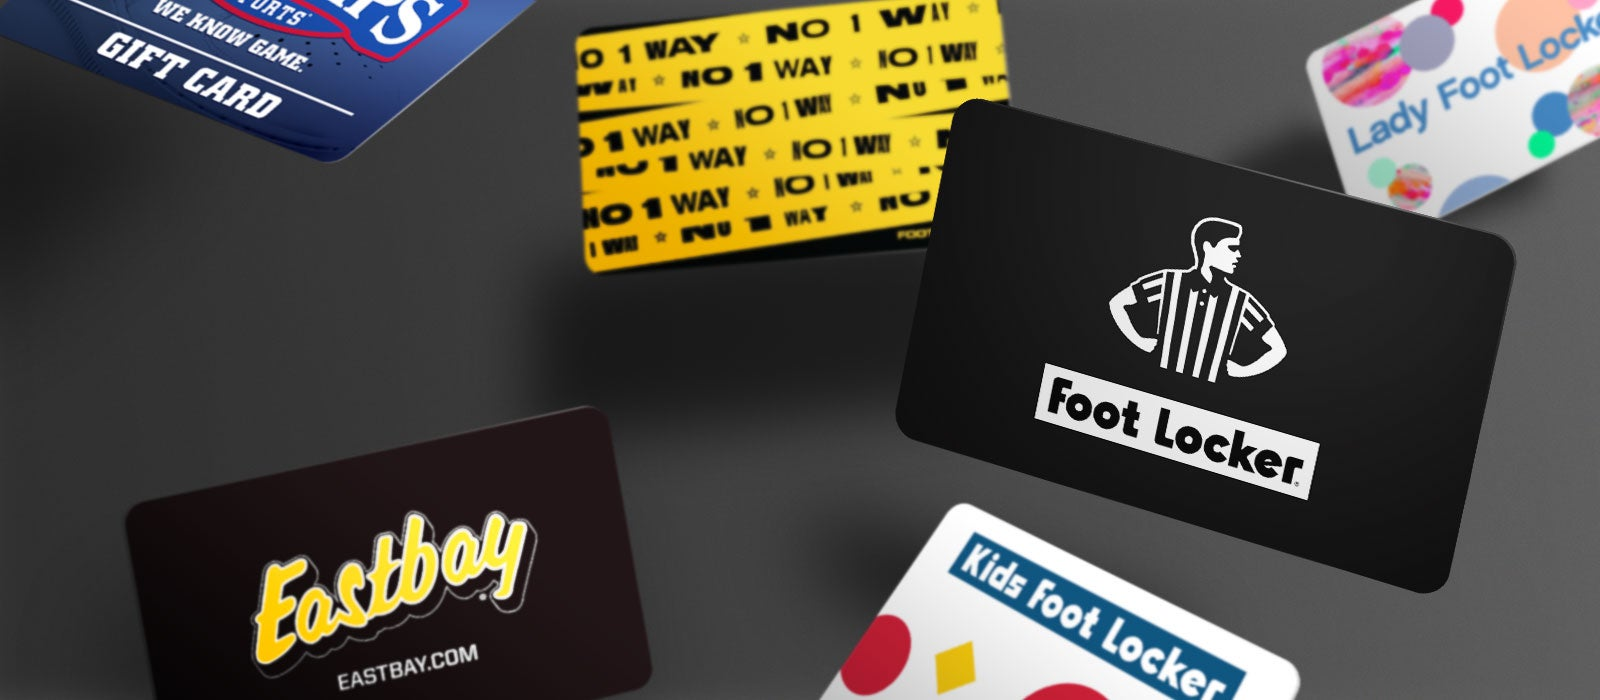 Gift Cards Foot Locker